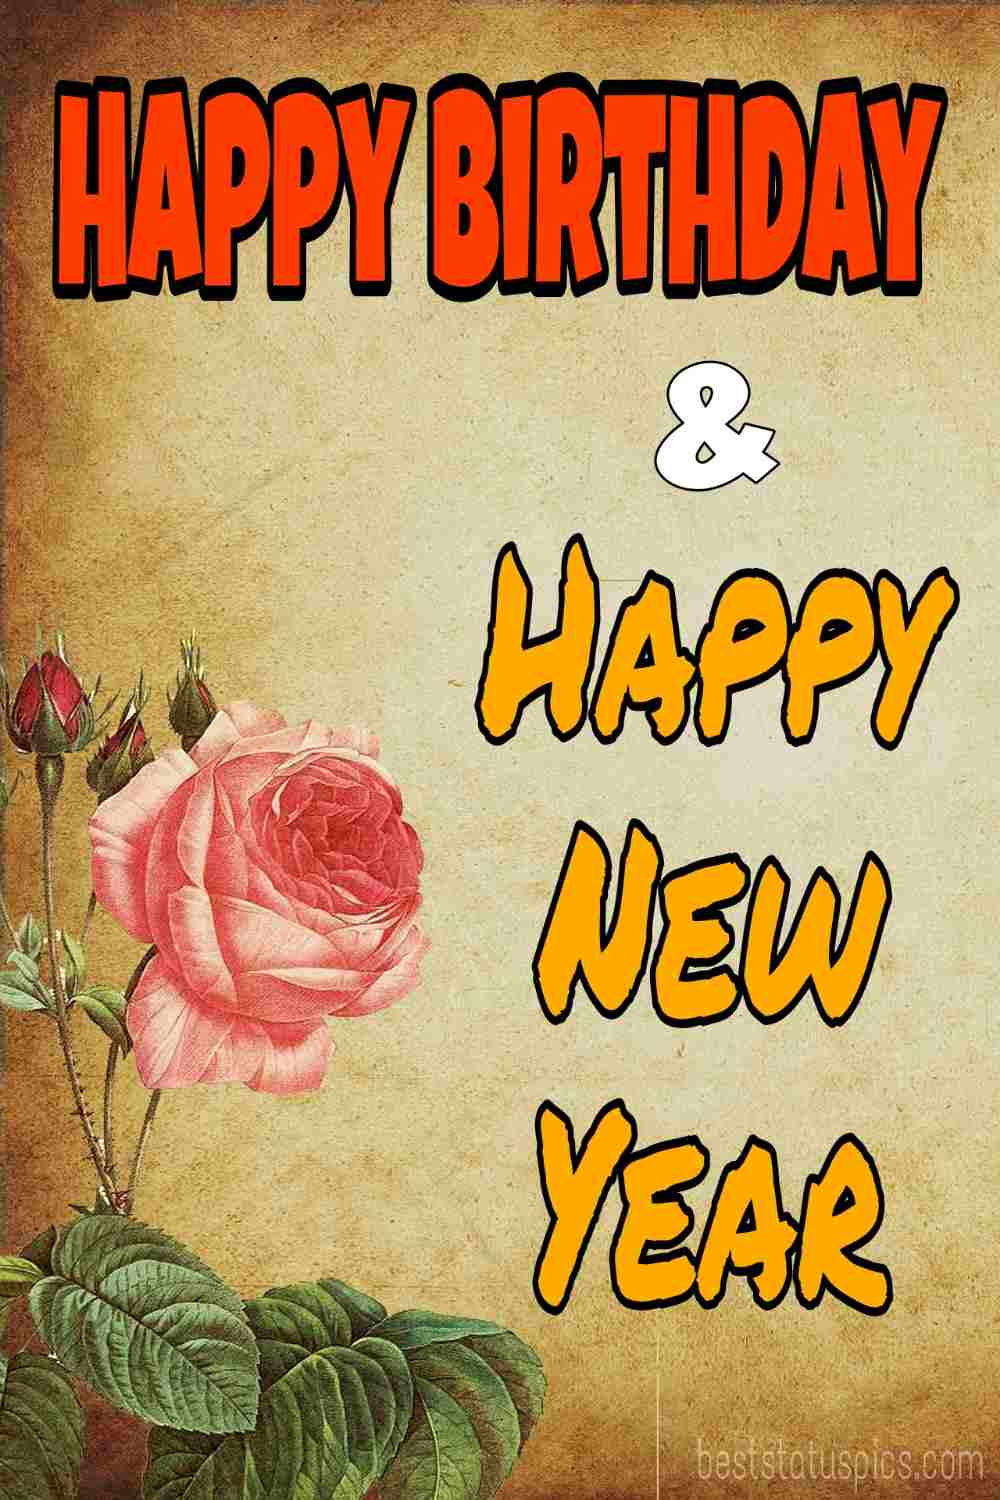 Happy new year 2022 and Happy Birthday wishes images and card with rose for girlfriend, boyfriend, husband, wife and lover